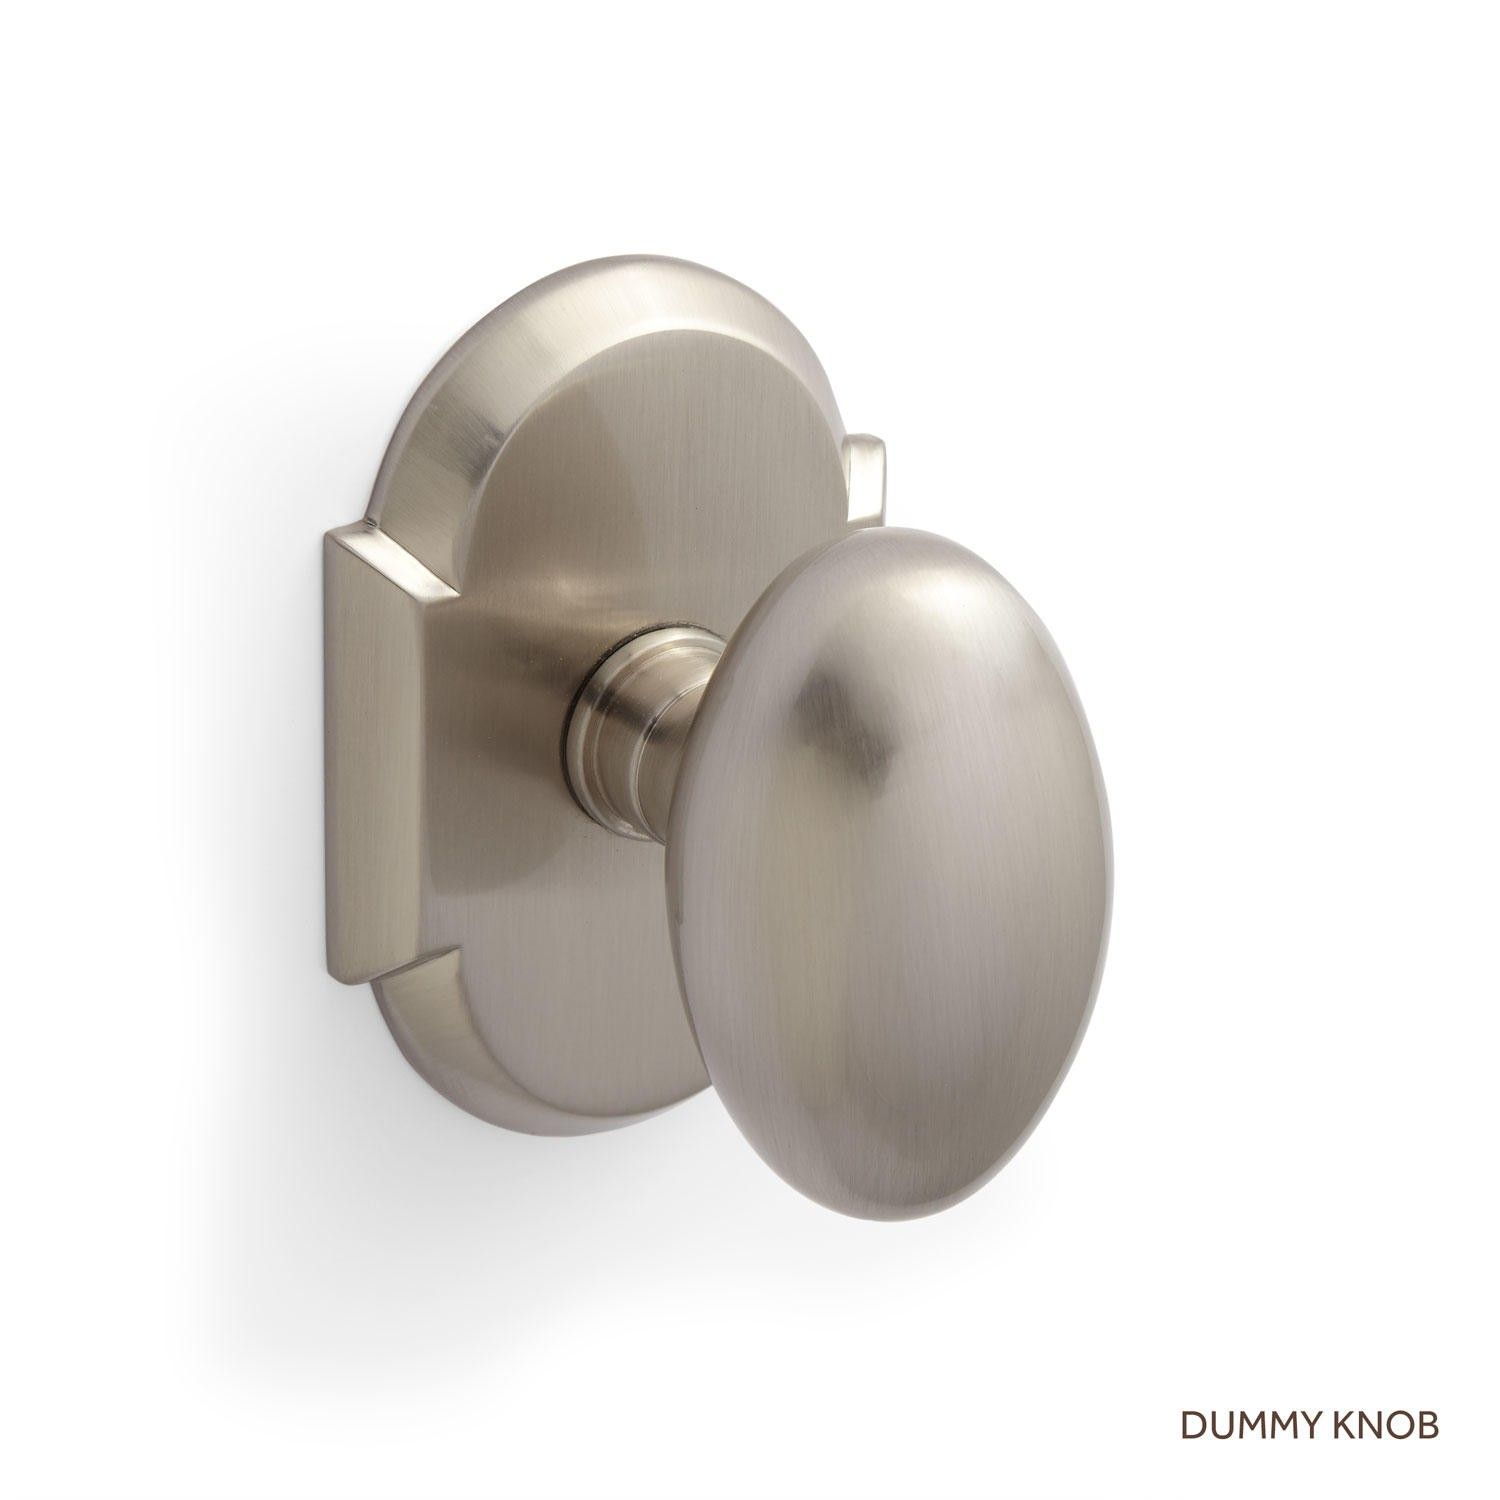 2 x TOP QUALITY PRIVACY SATIN STAINLESS STEEL BATHROOM MORTICE DOOR KNOB SETS